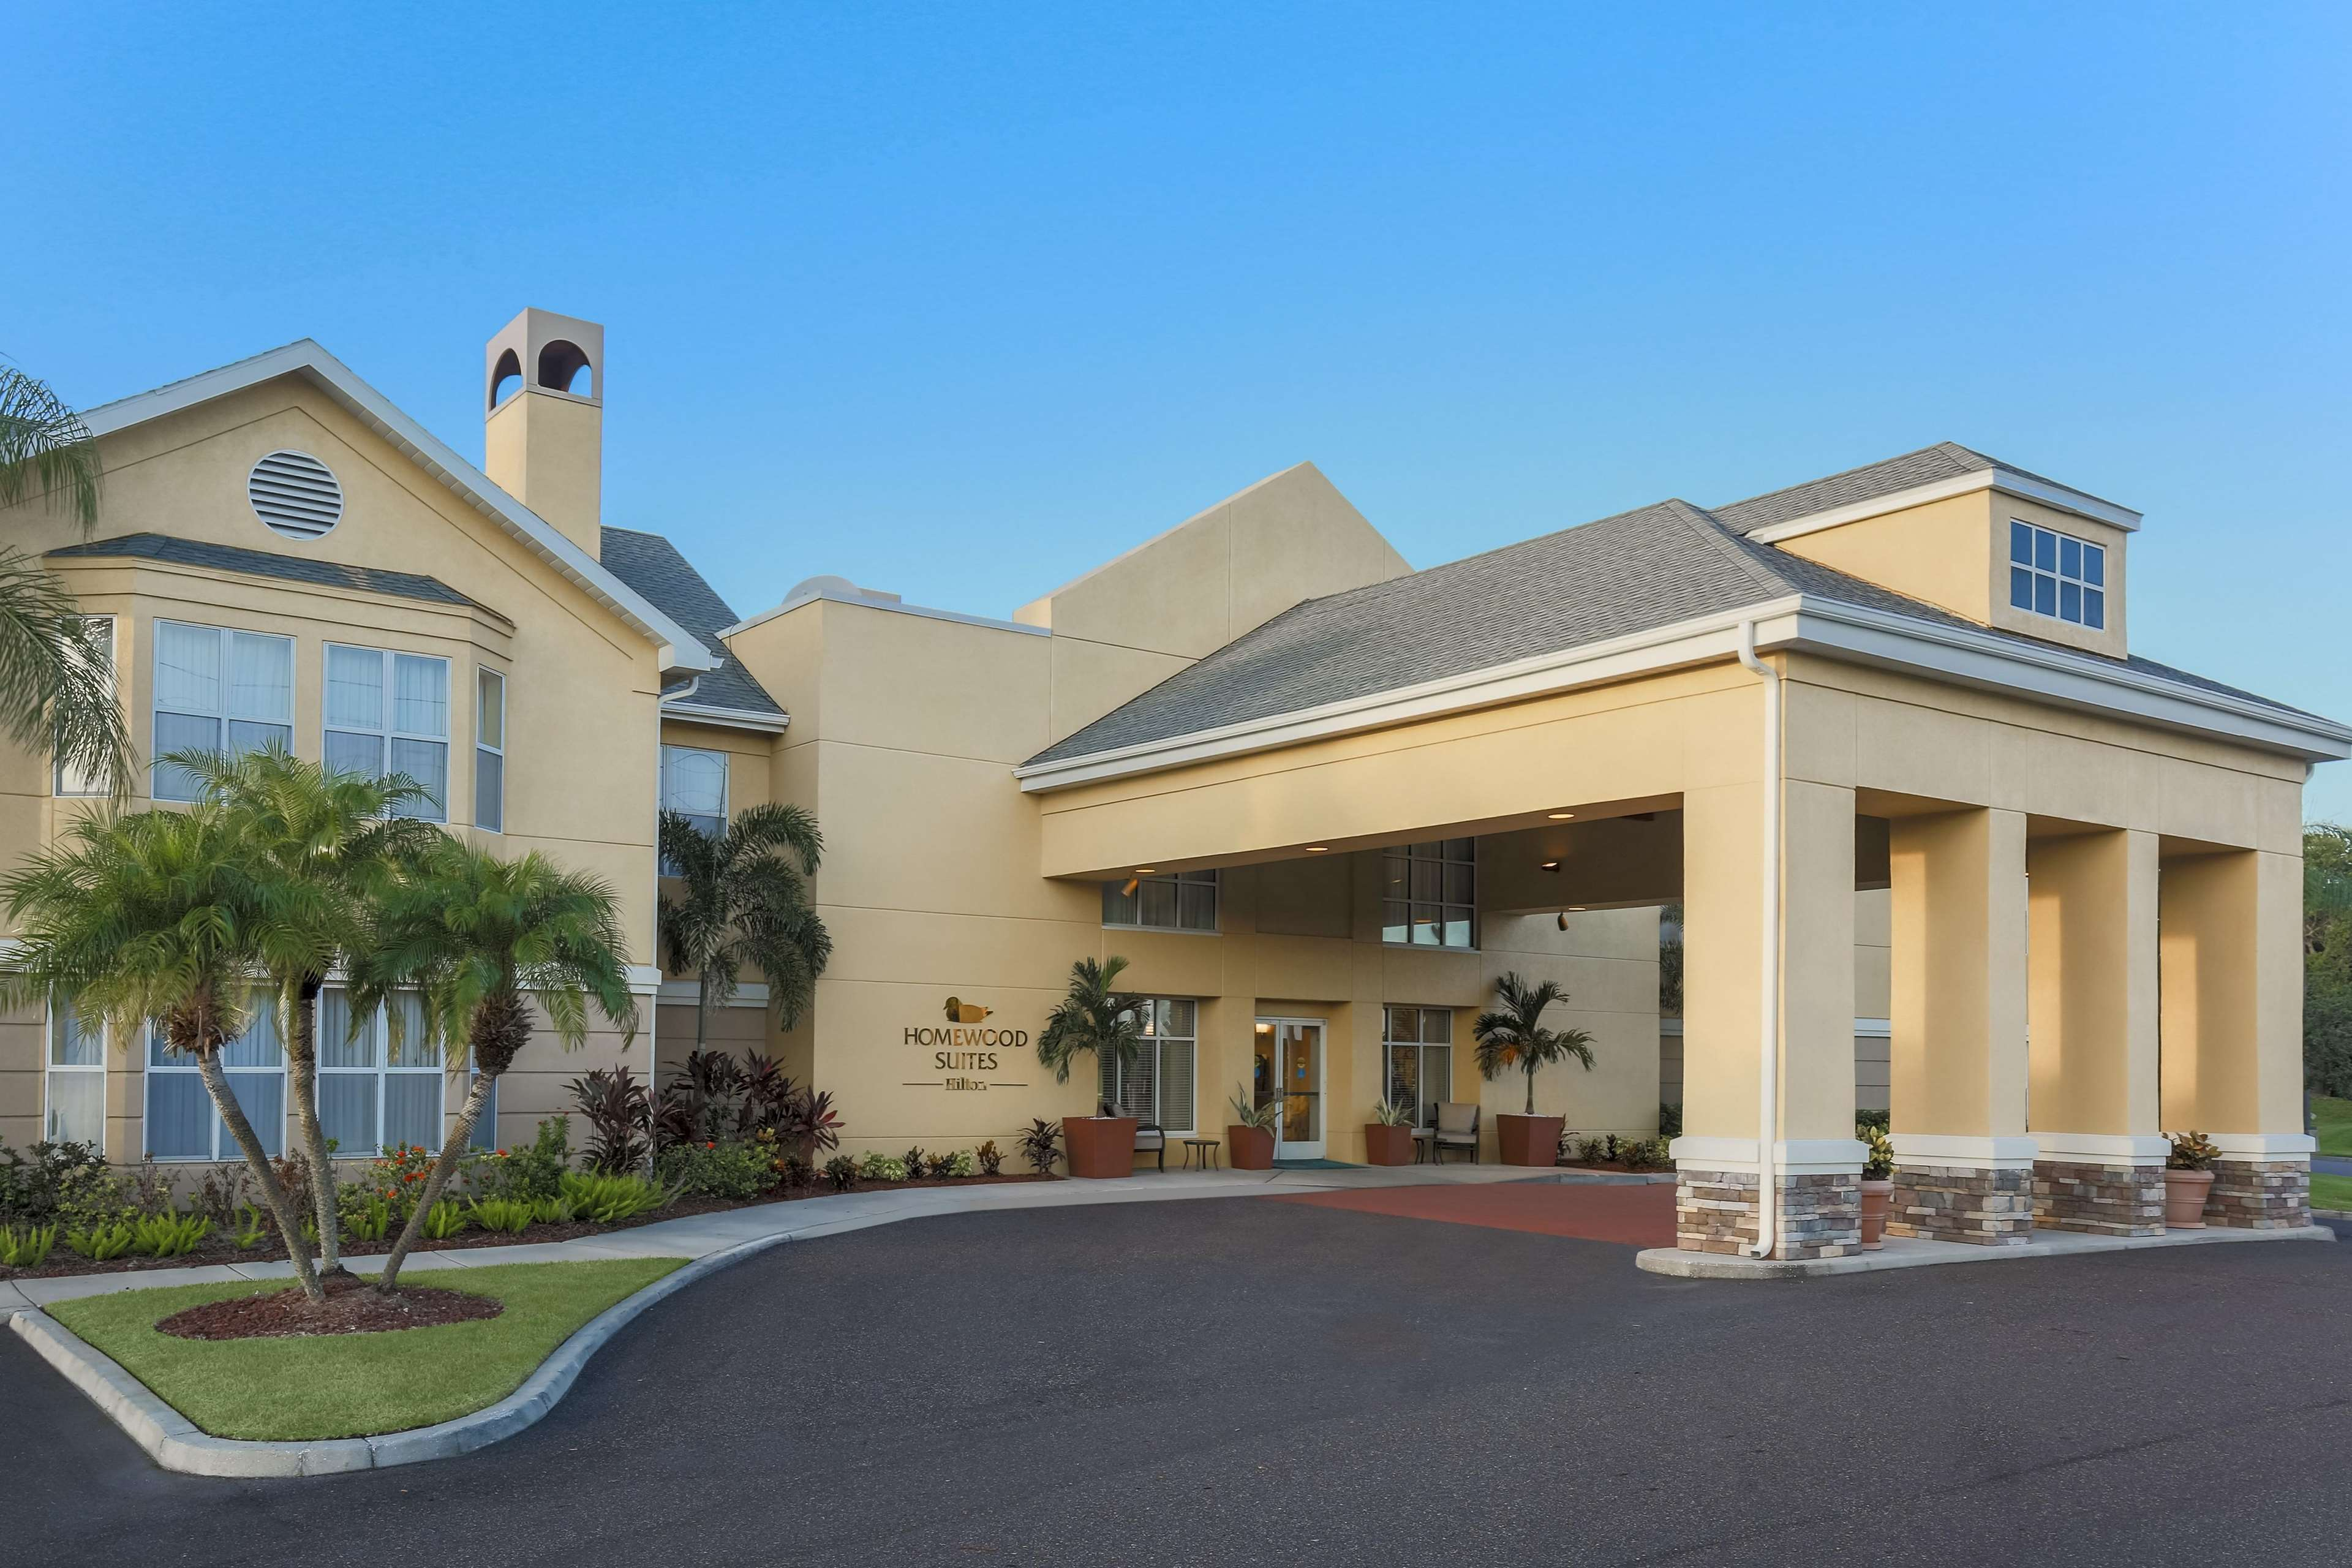 Homewood Suites by Hilton St. Petersburg Clearwater image 27